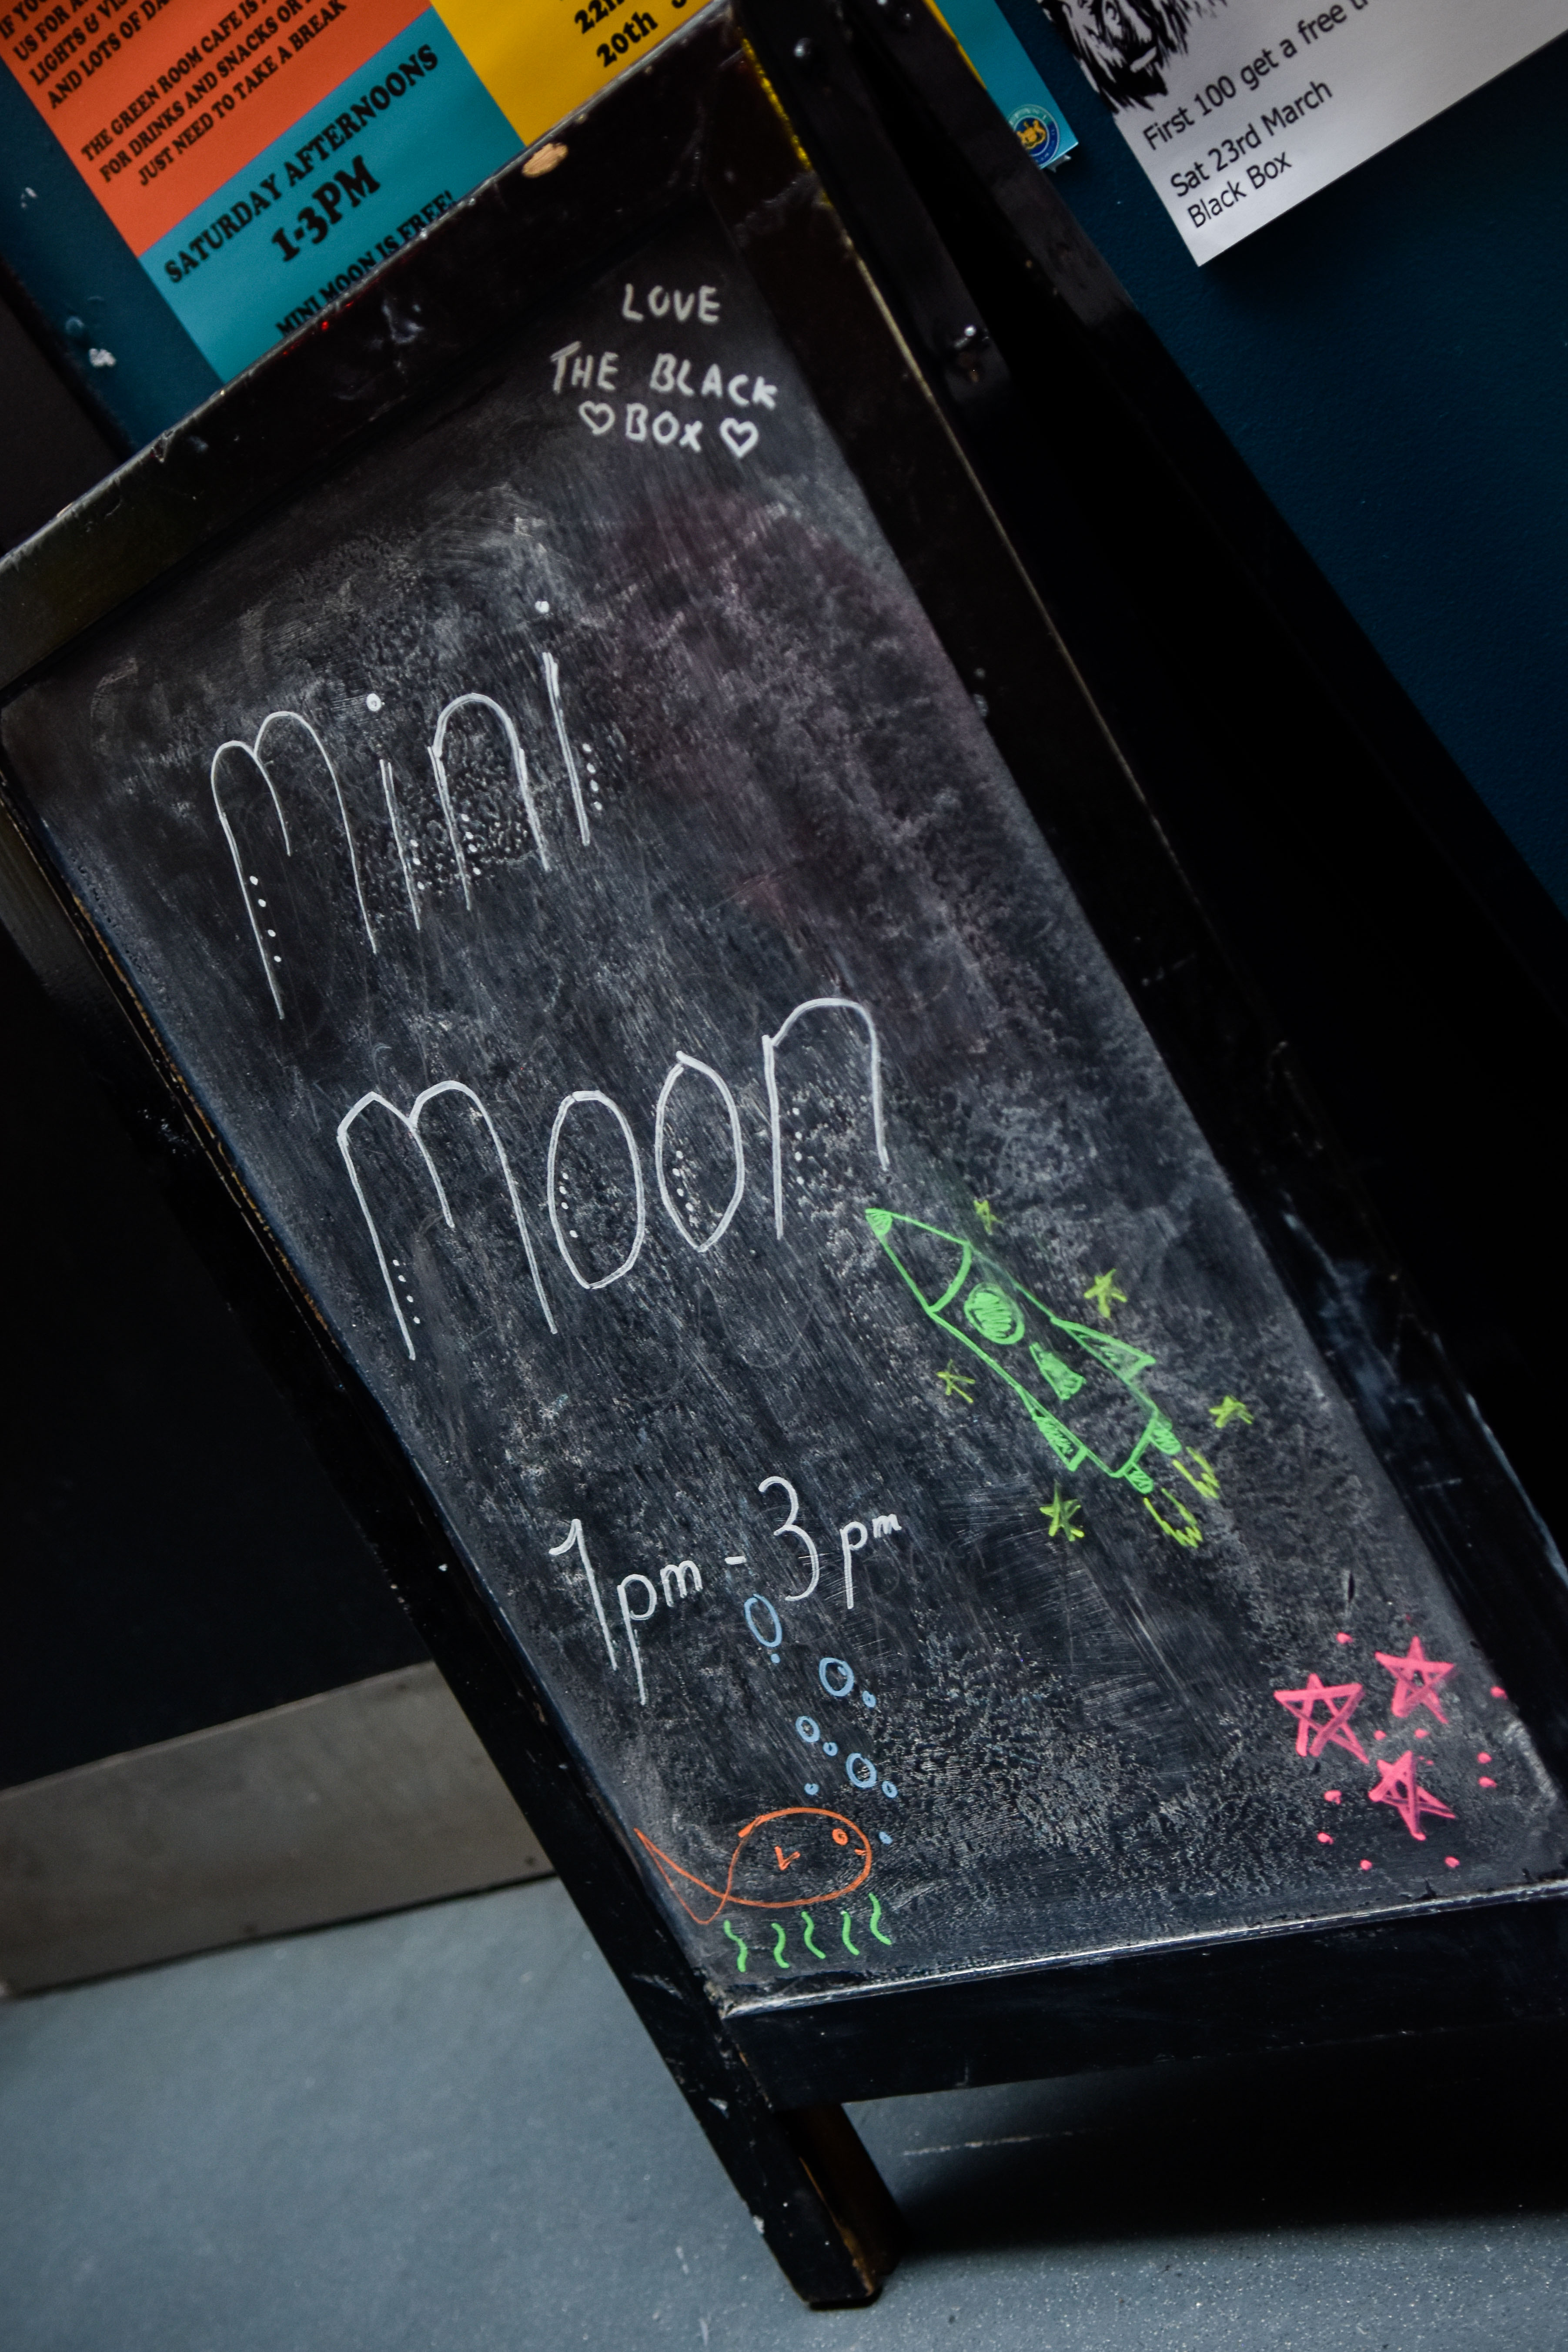 Mini Moon Disco at The Black Box